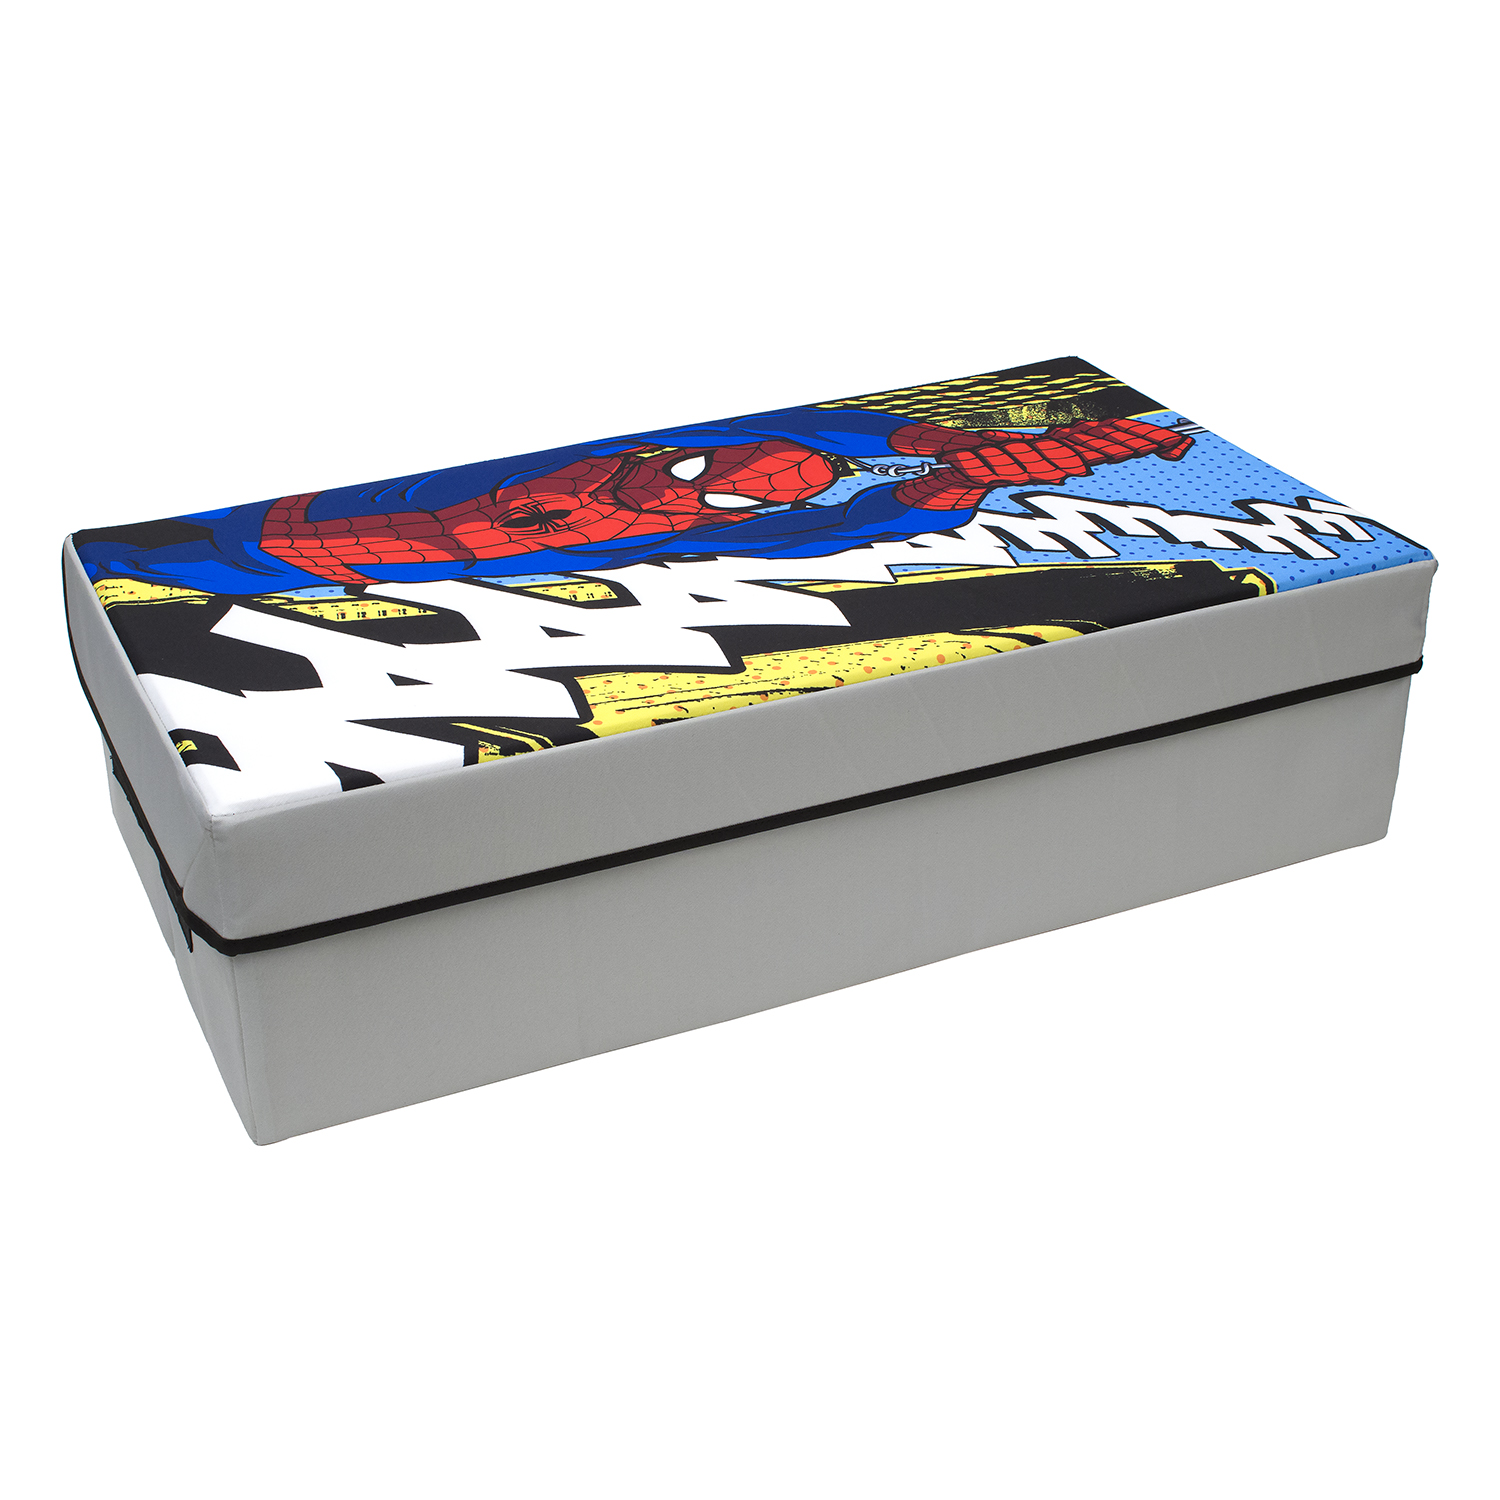 Spiderman Under Bed Storage Slim Collapsible Toy Chest   Marvel   Everything Mary